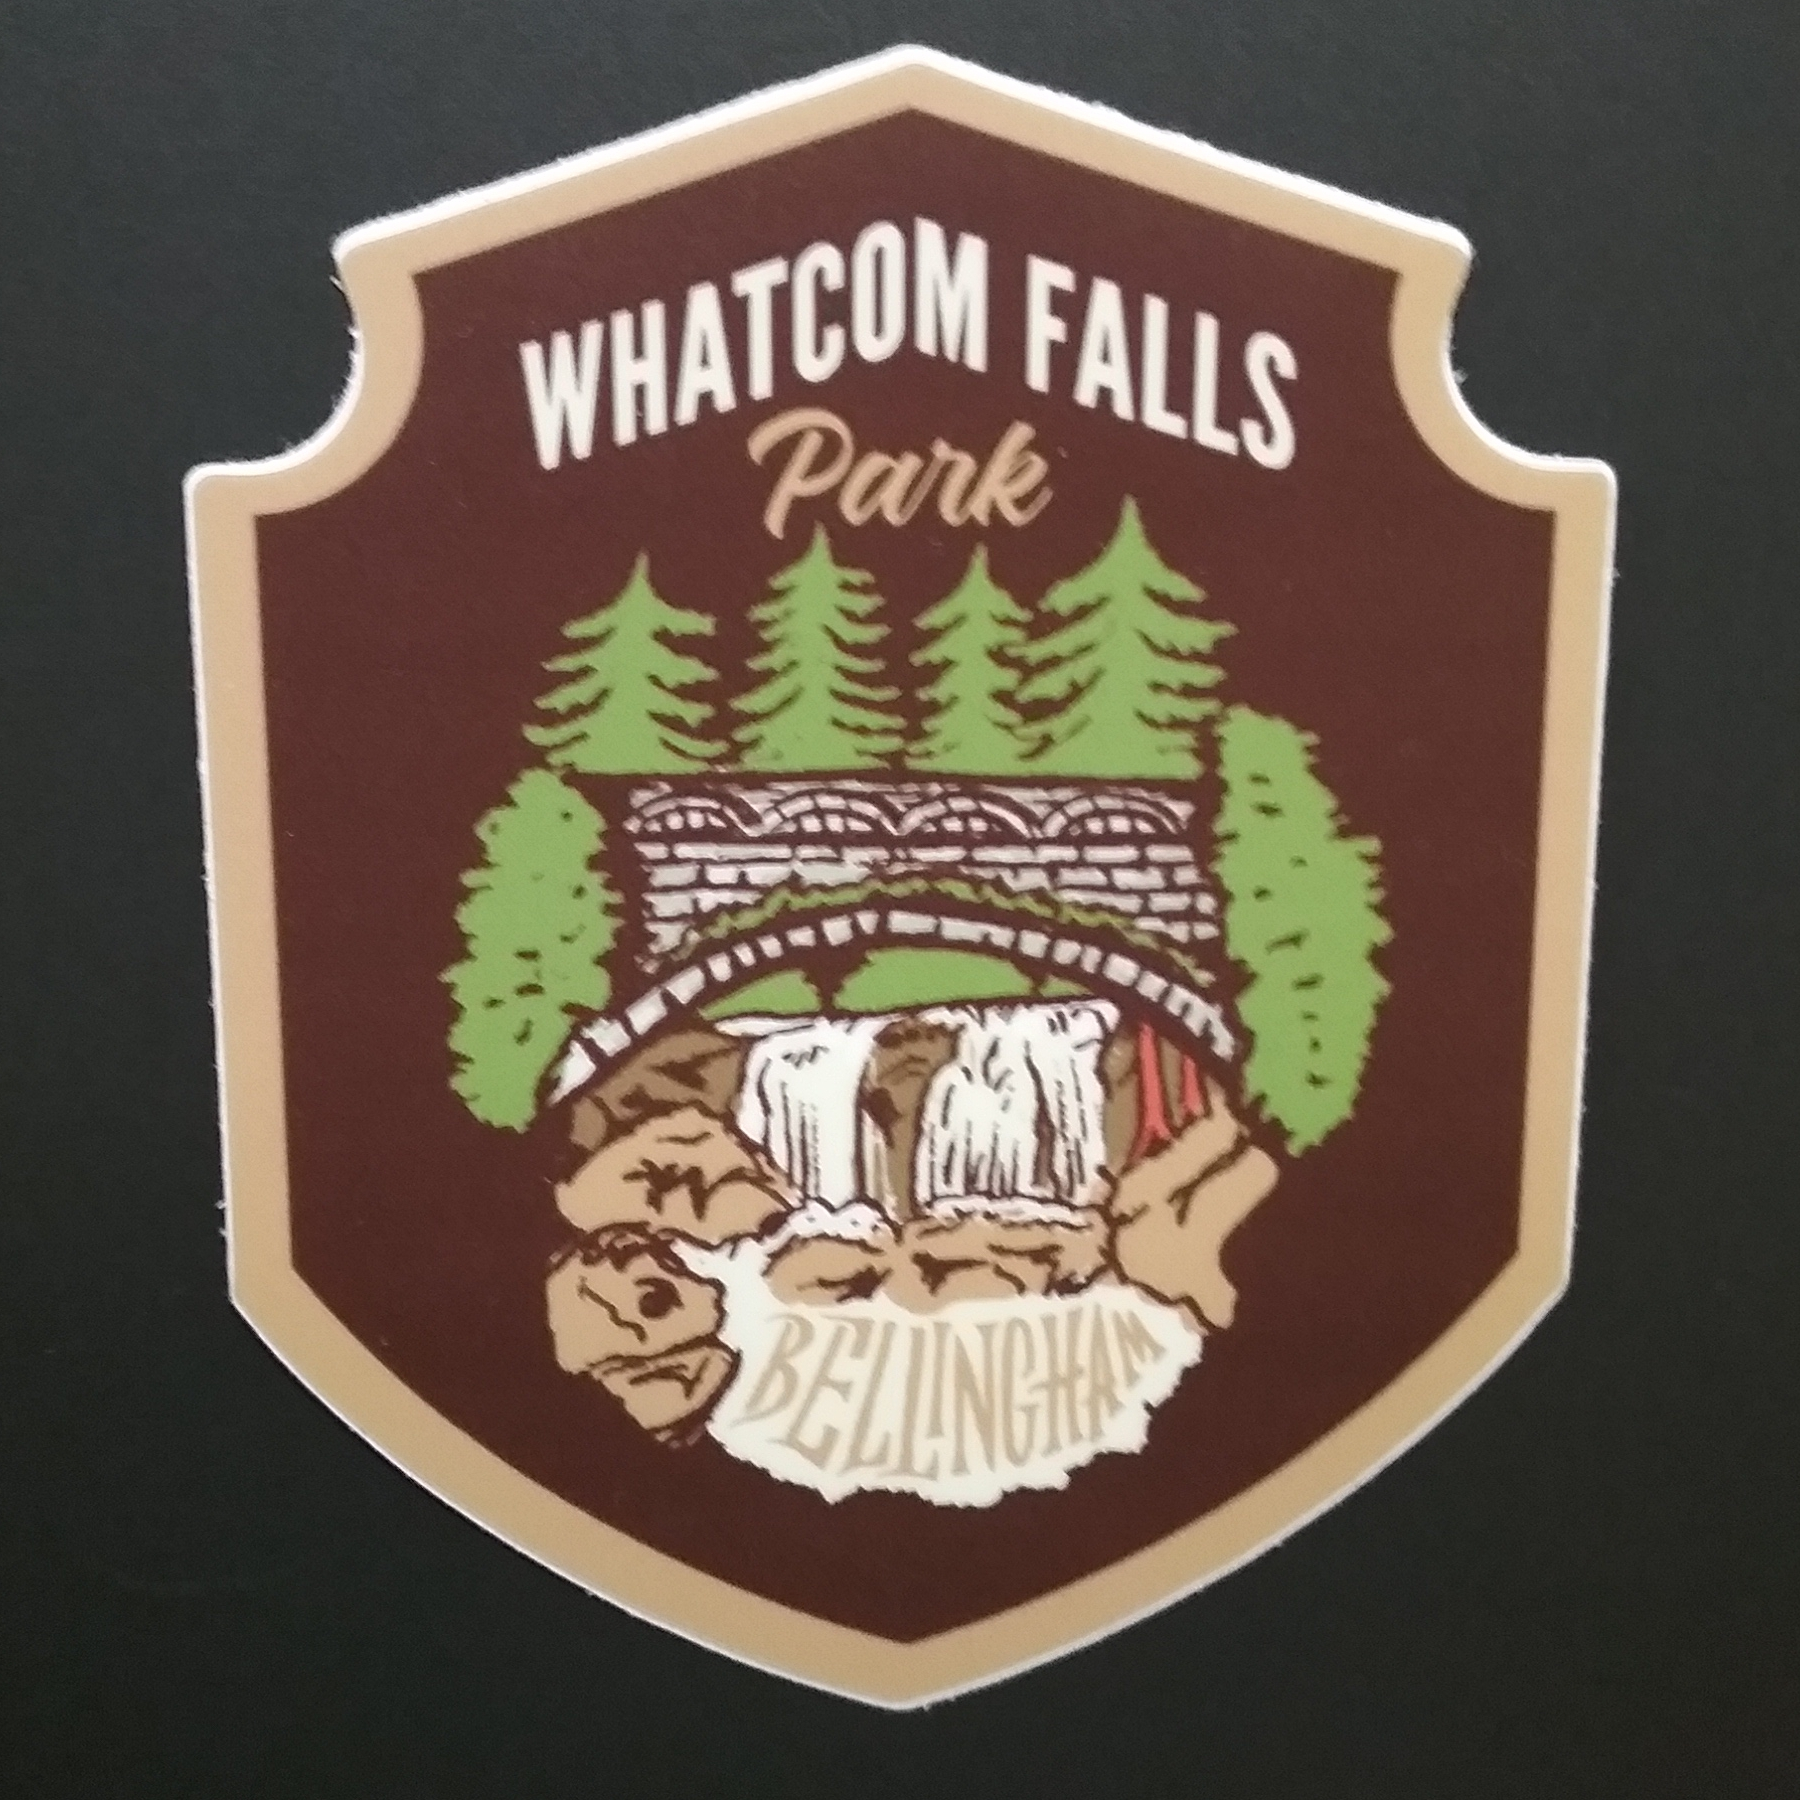 Whatcom Falls Park Sticker